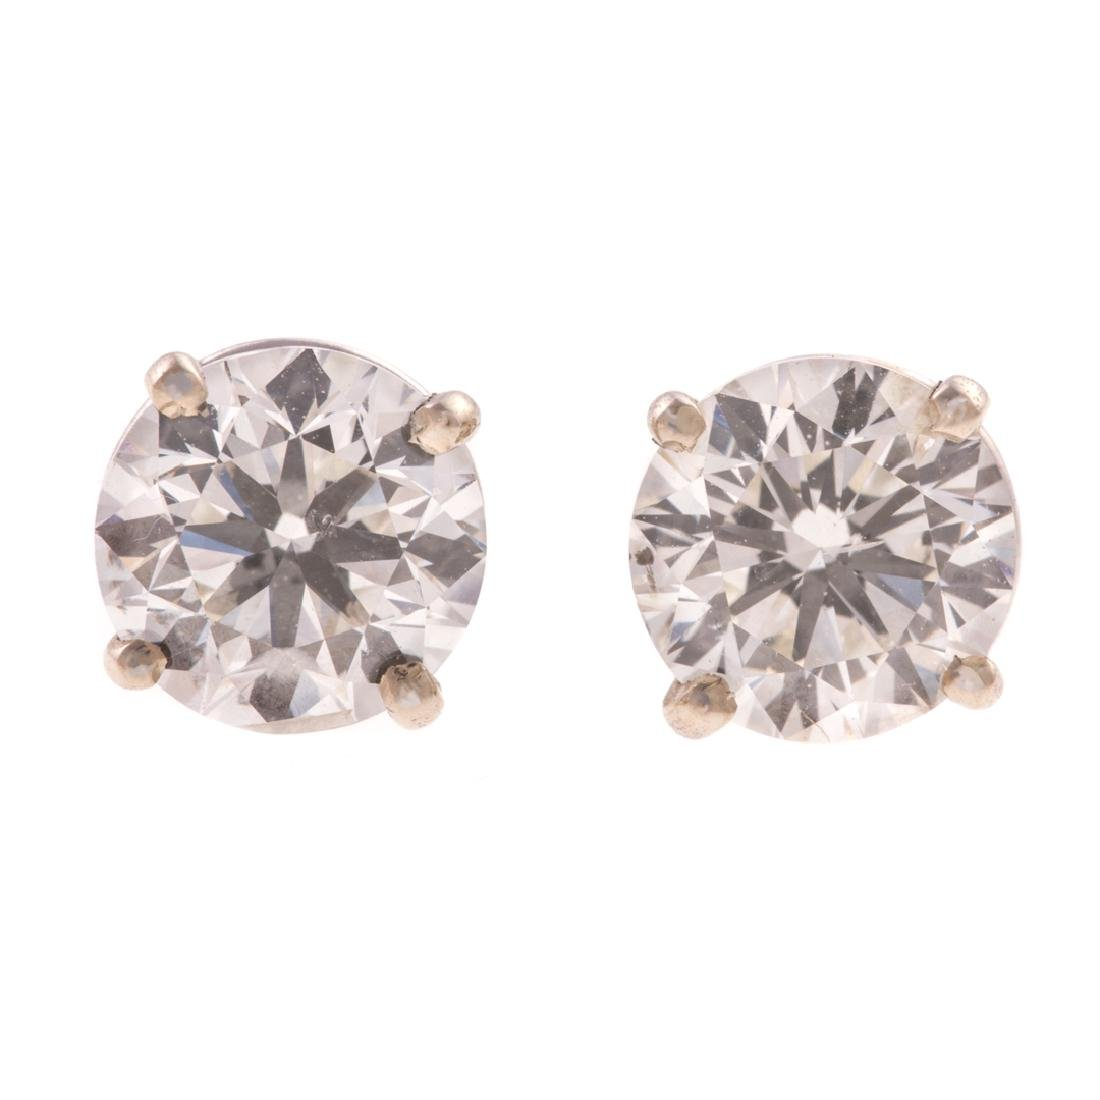 A Pair of 2.01 tcw Diamond Studs in 14K White Gold